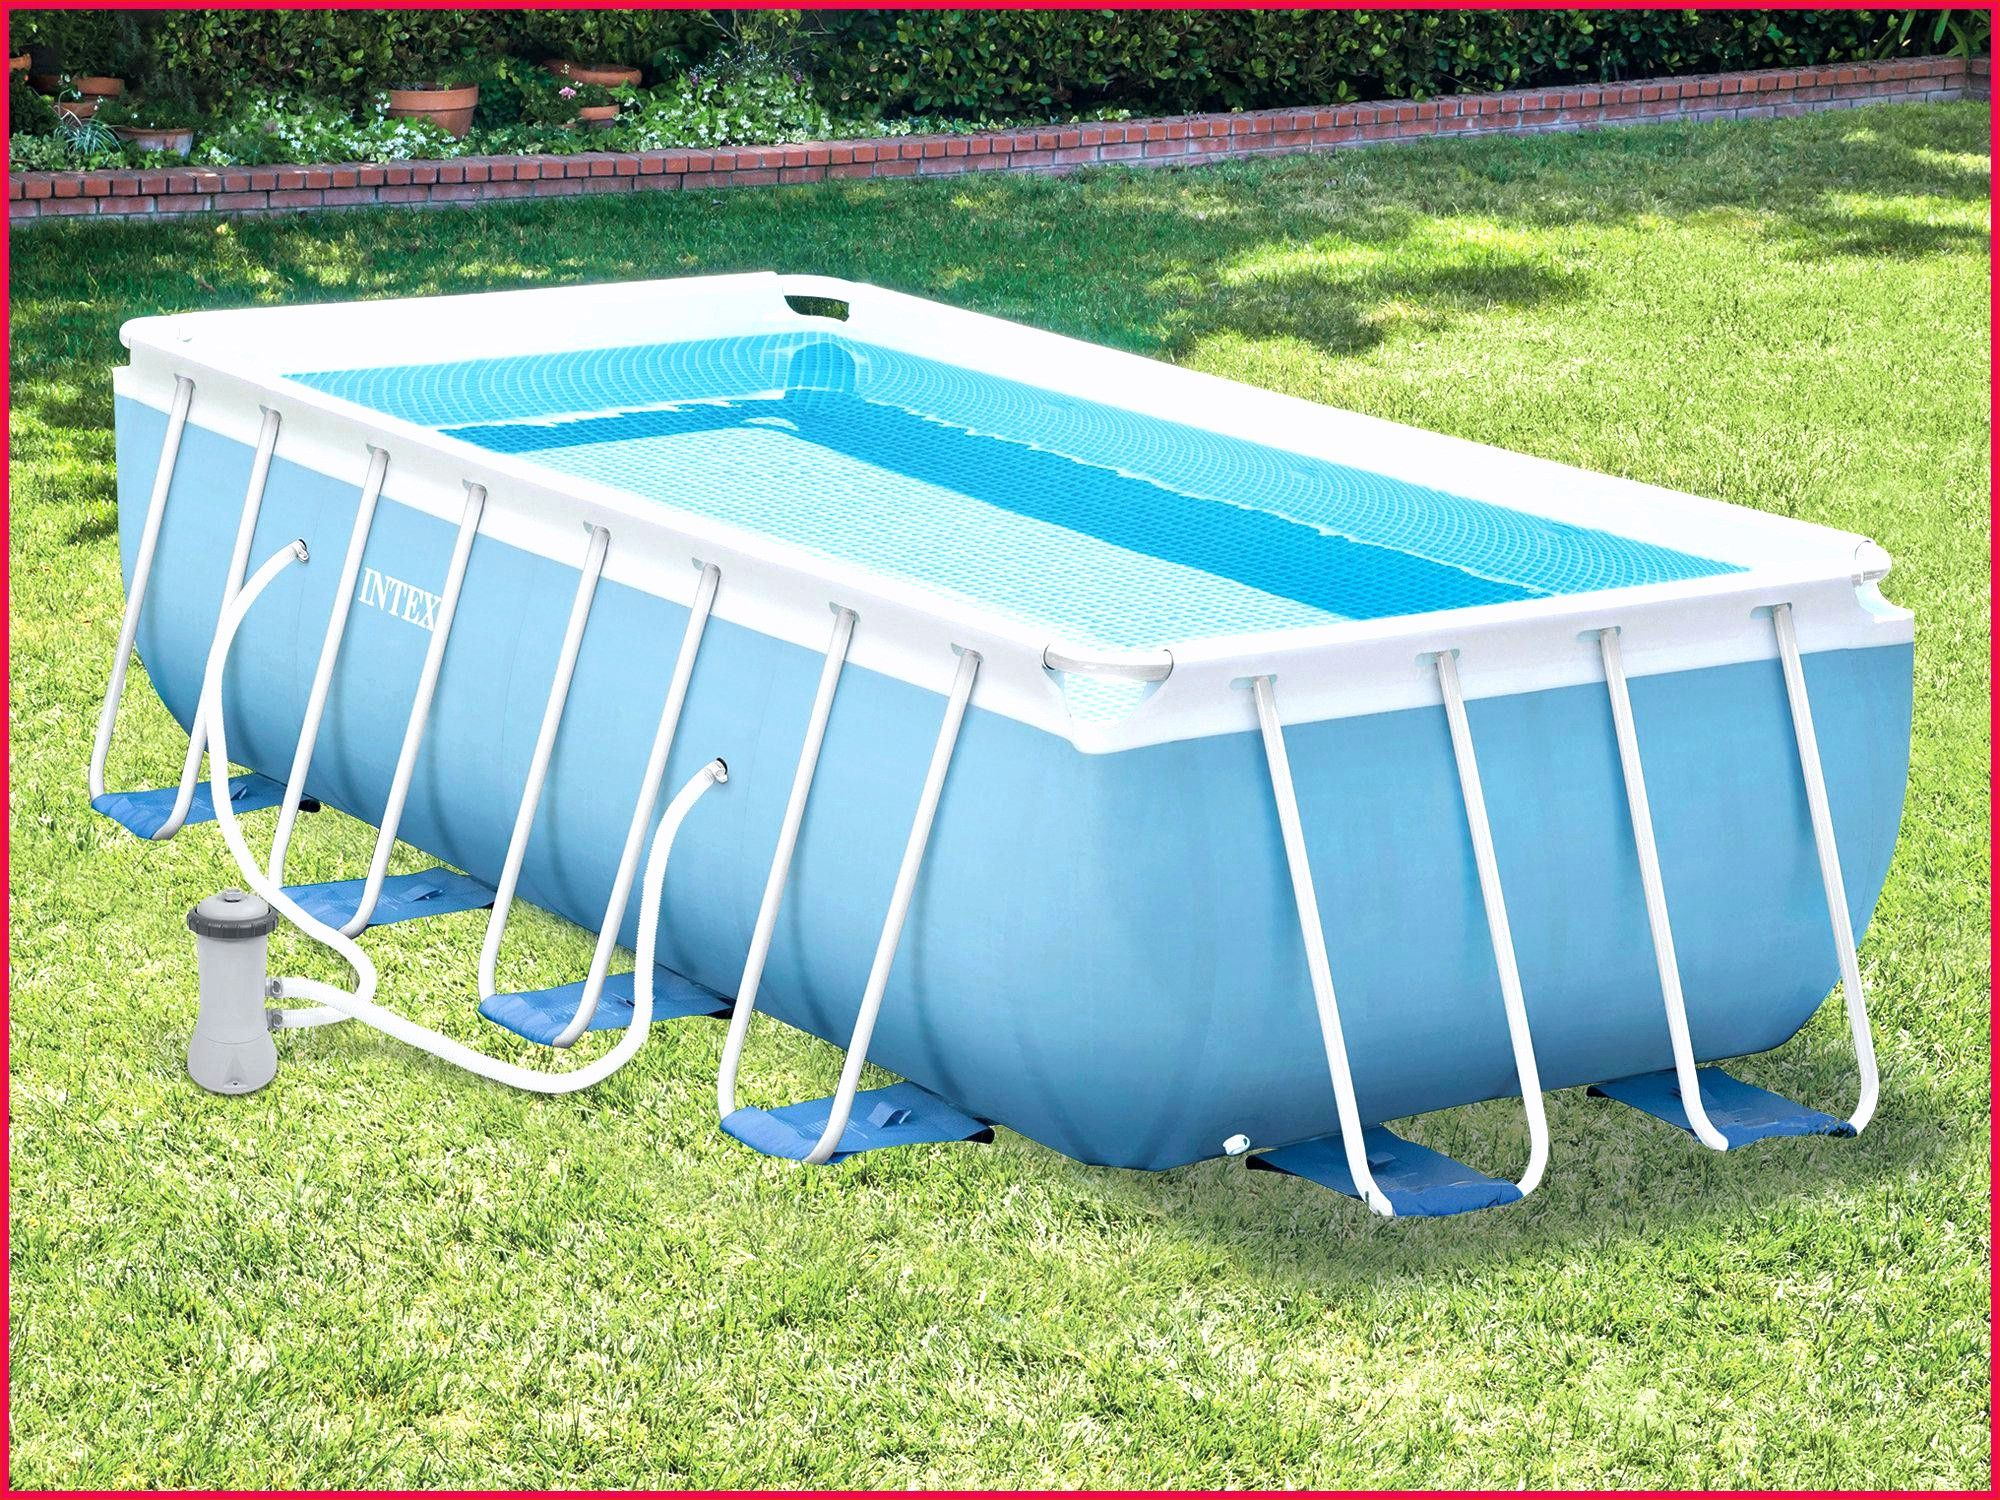 Epingle Sur Conception De Piscine Pool Ideas